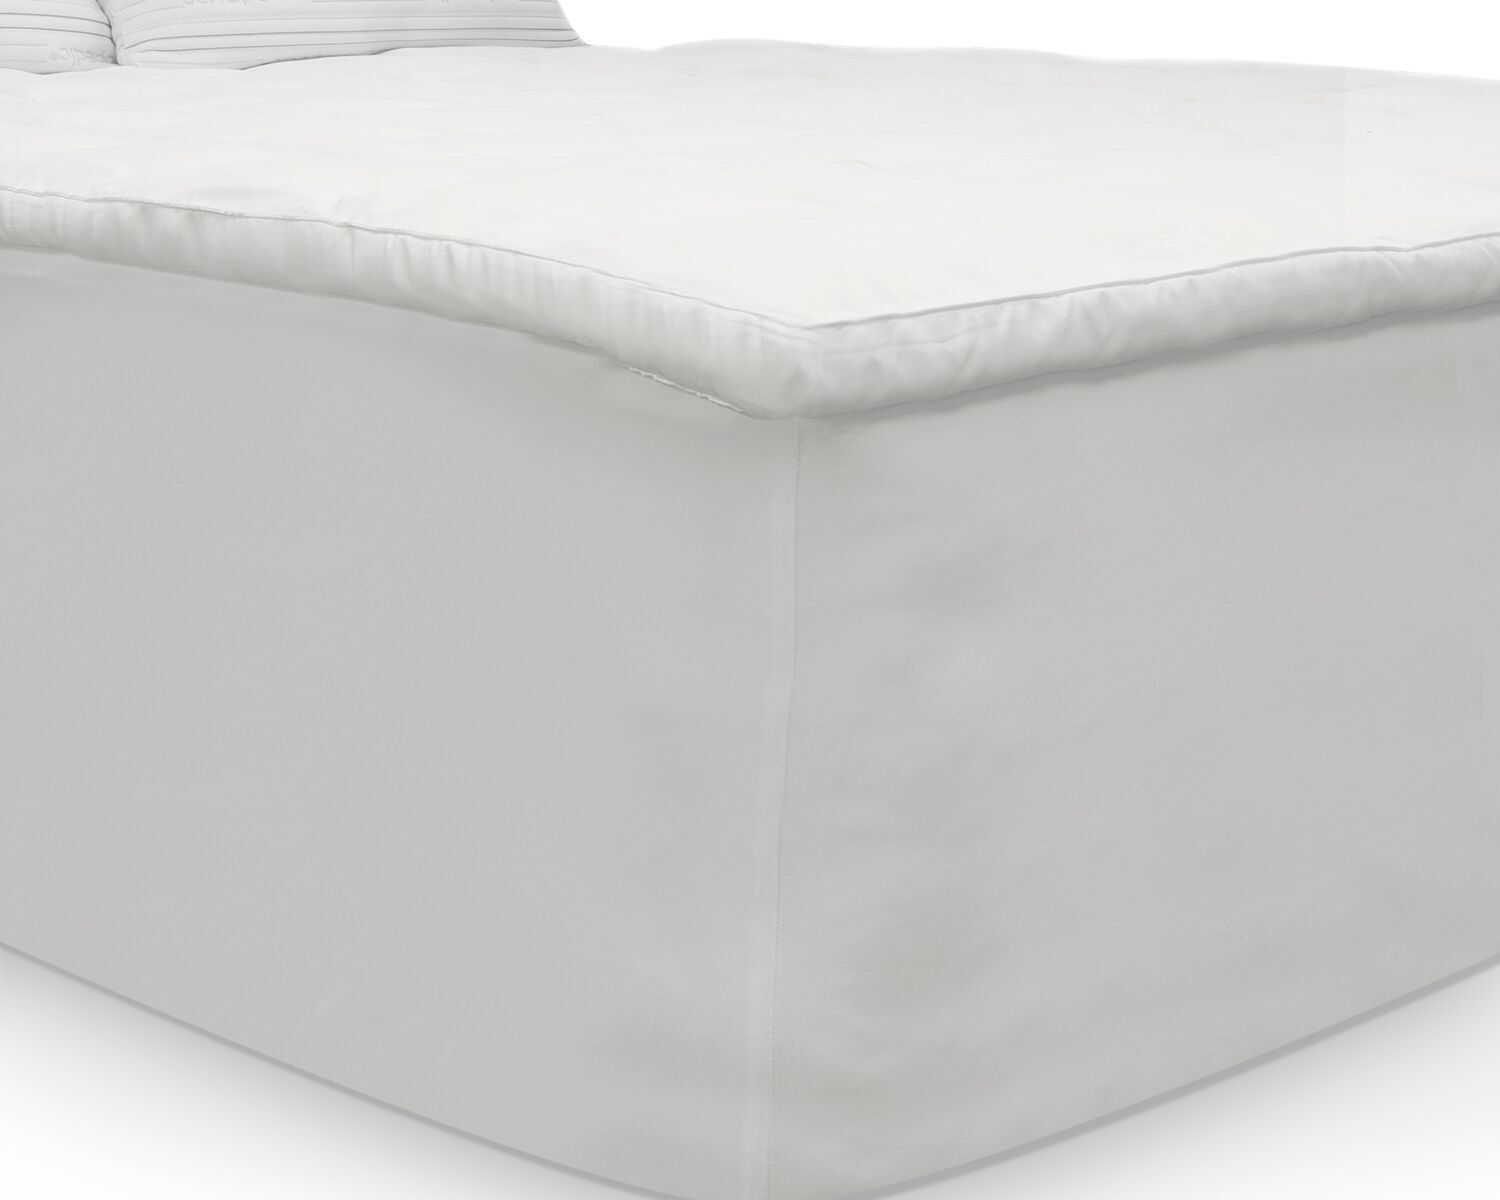 Comfy Mattress Details About Mattress Pad Queen Size Cover Bed Foam Top Soft Comfy Microfiber Quilted Pockets